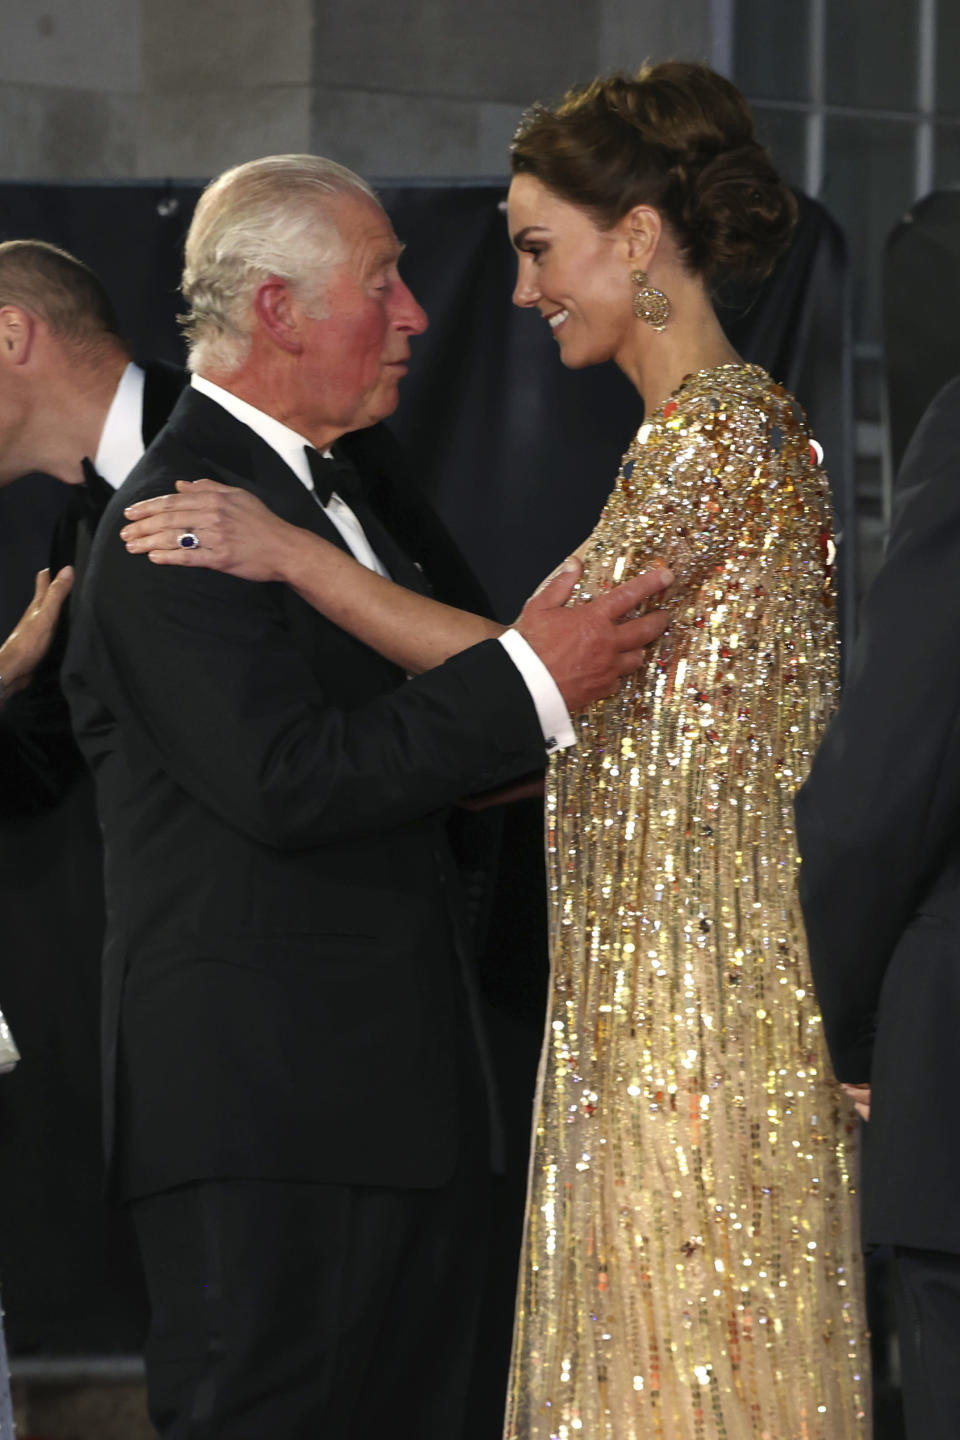 Britain's Prince Charles, left, reacts with Kate, the Duchess of Cambridge as they arrive for the World premiere of the new film from the James Bond franchise 'No Time To Die', in London, Tuesday, Sept. 28, 2021. (Chris Jackson/Pool Photo via AP)